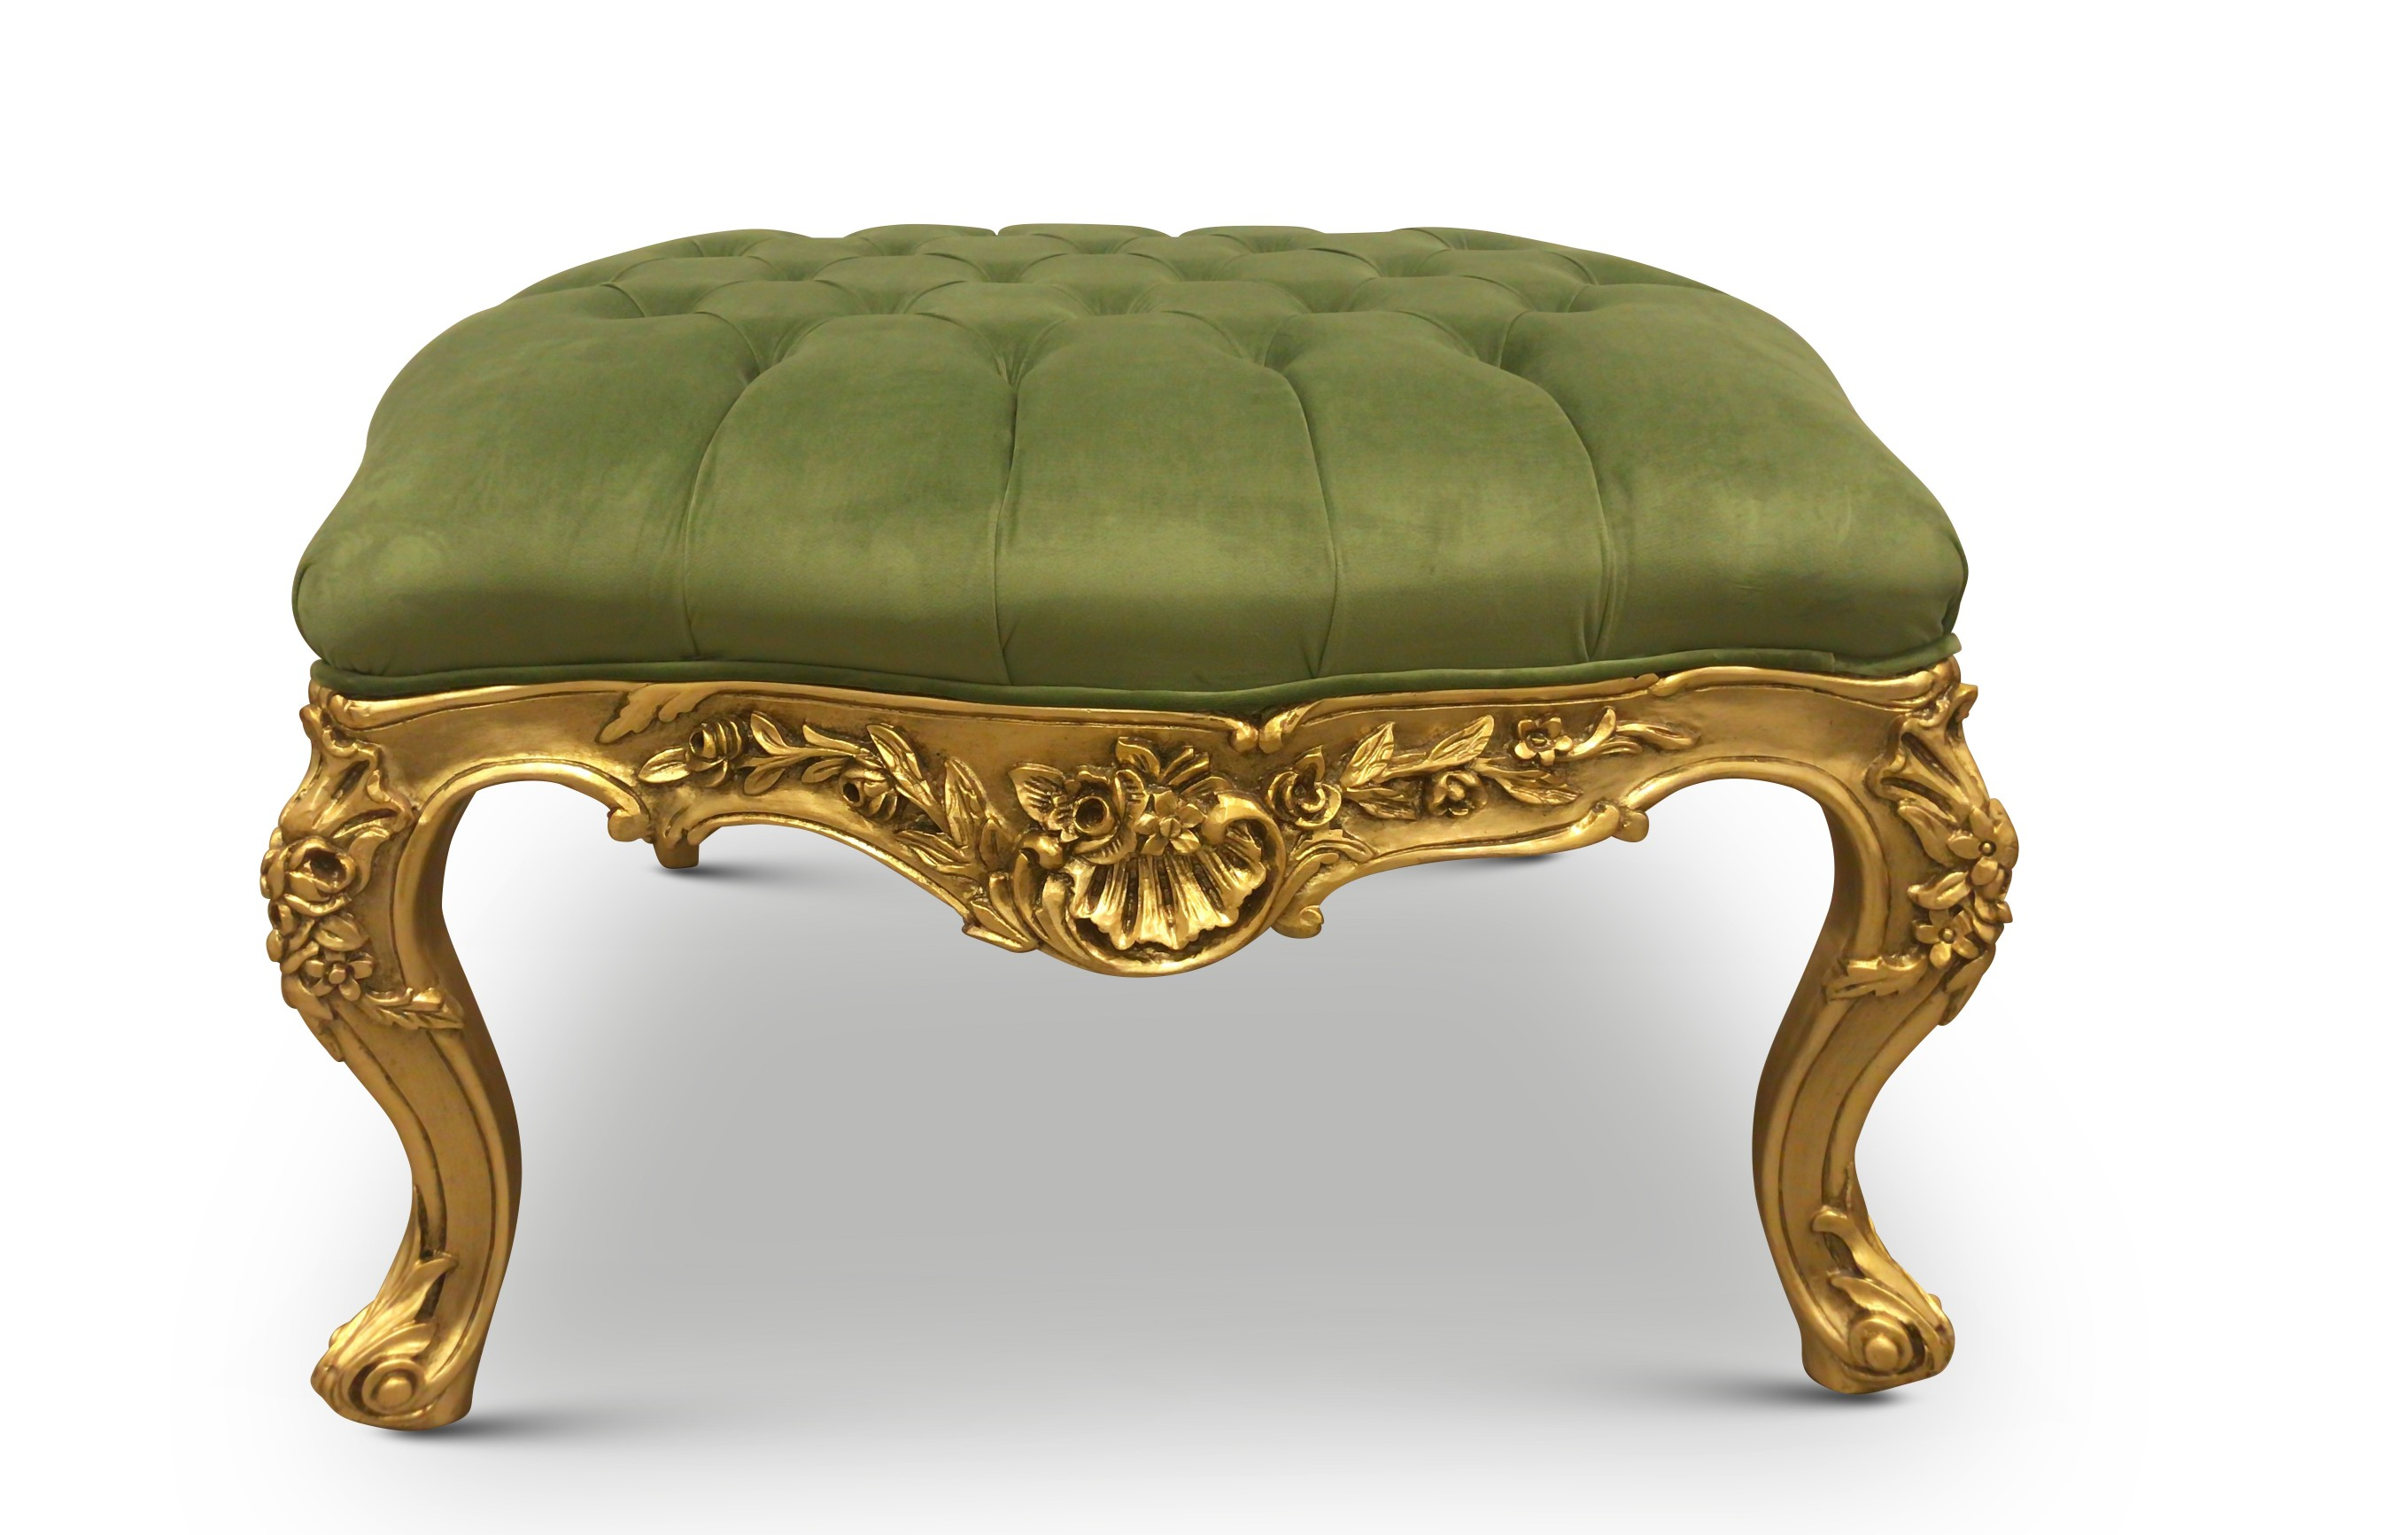 Marvelous Cardere French Style Gold Leaf Tufted Pistachio Green Velvet Ottoman Pdpeps Interior Chair Design Pdpepsorg